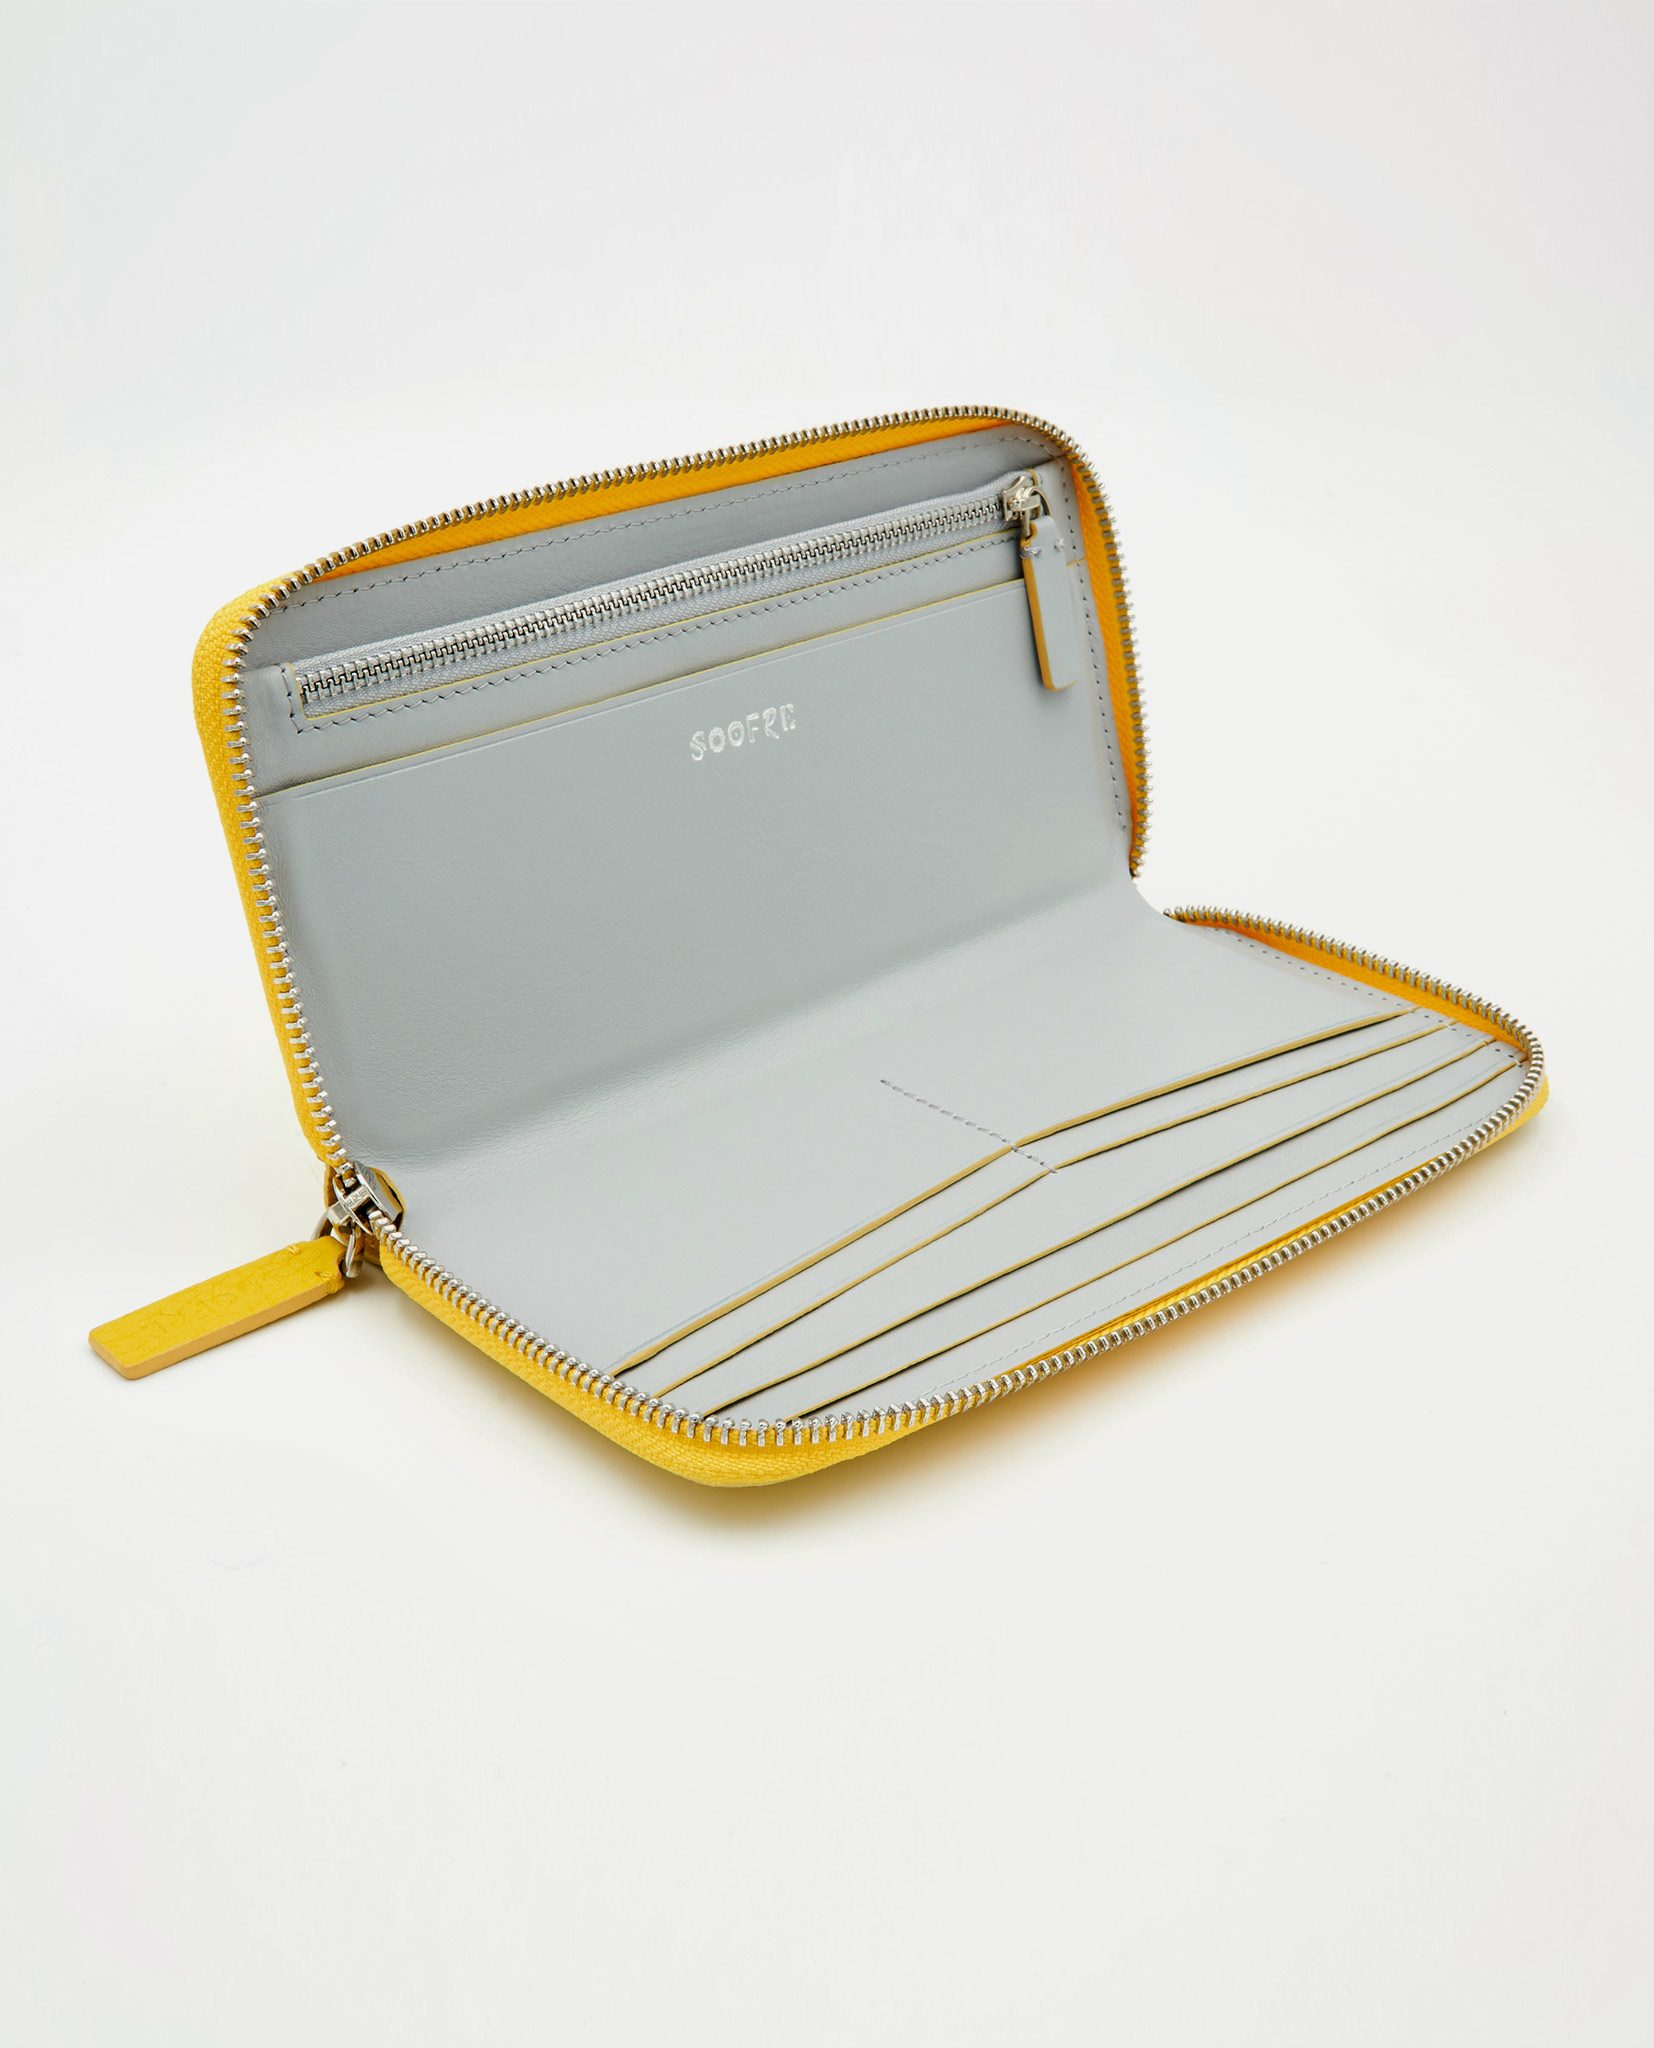 Soofre_Womens-Zip-Wallet-Yellow-Dove-Grey_2